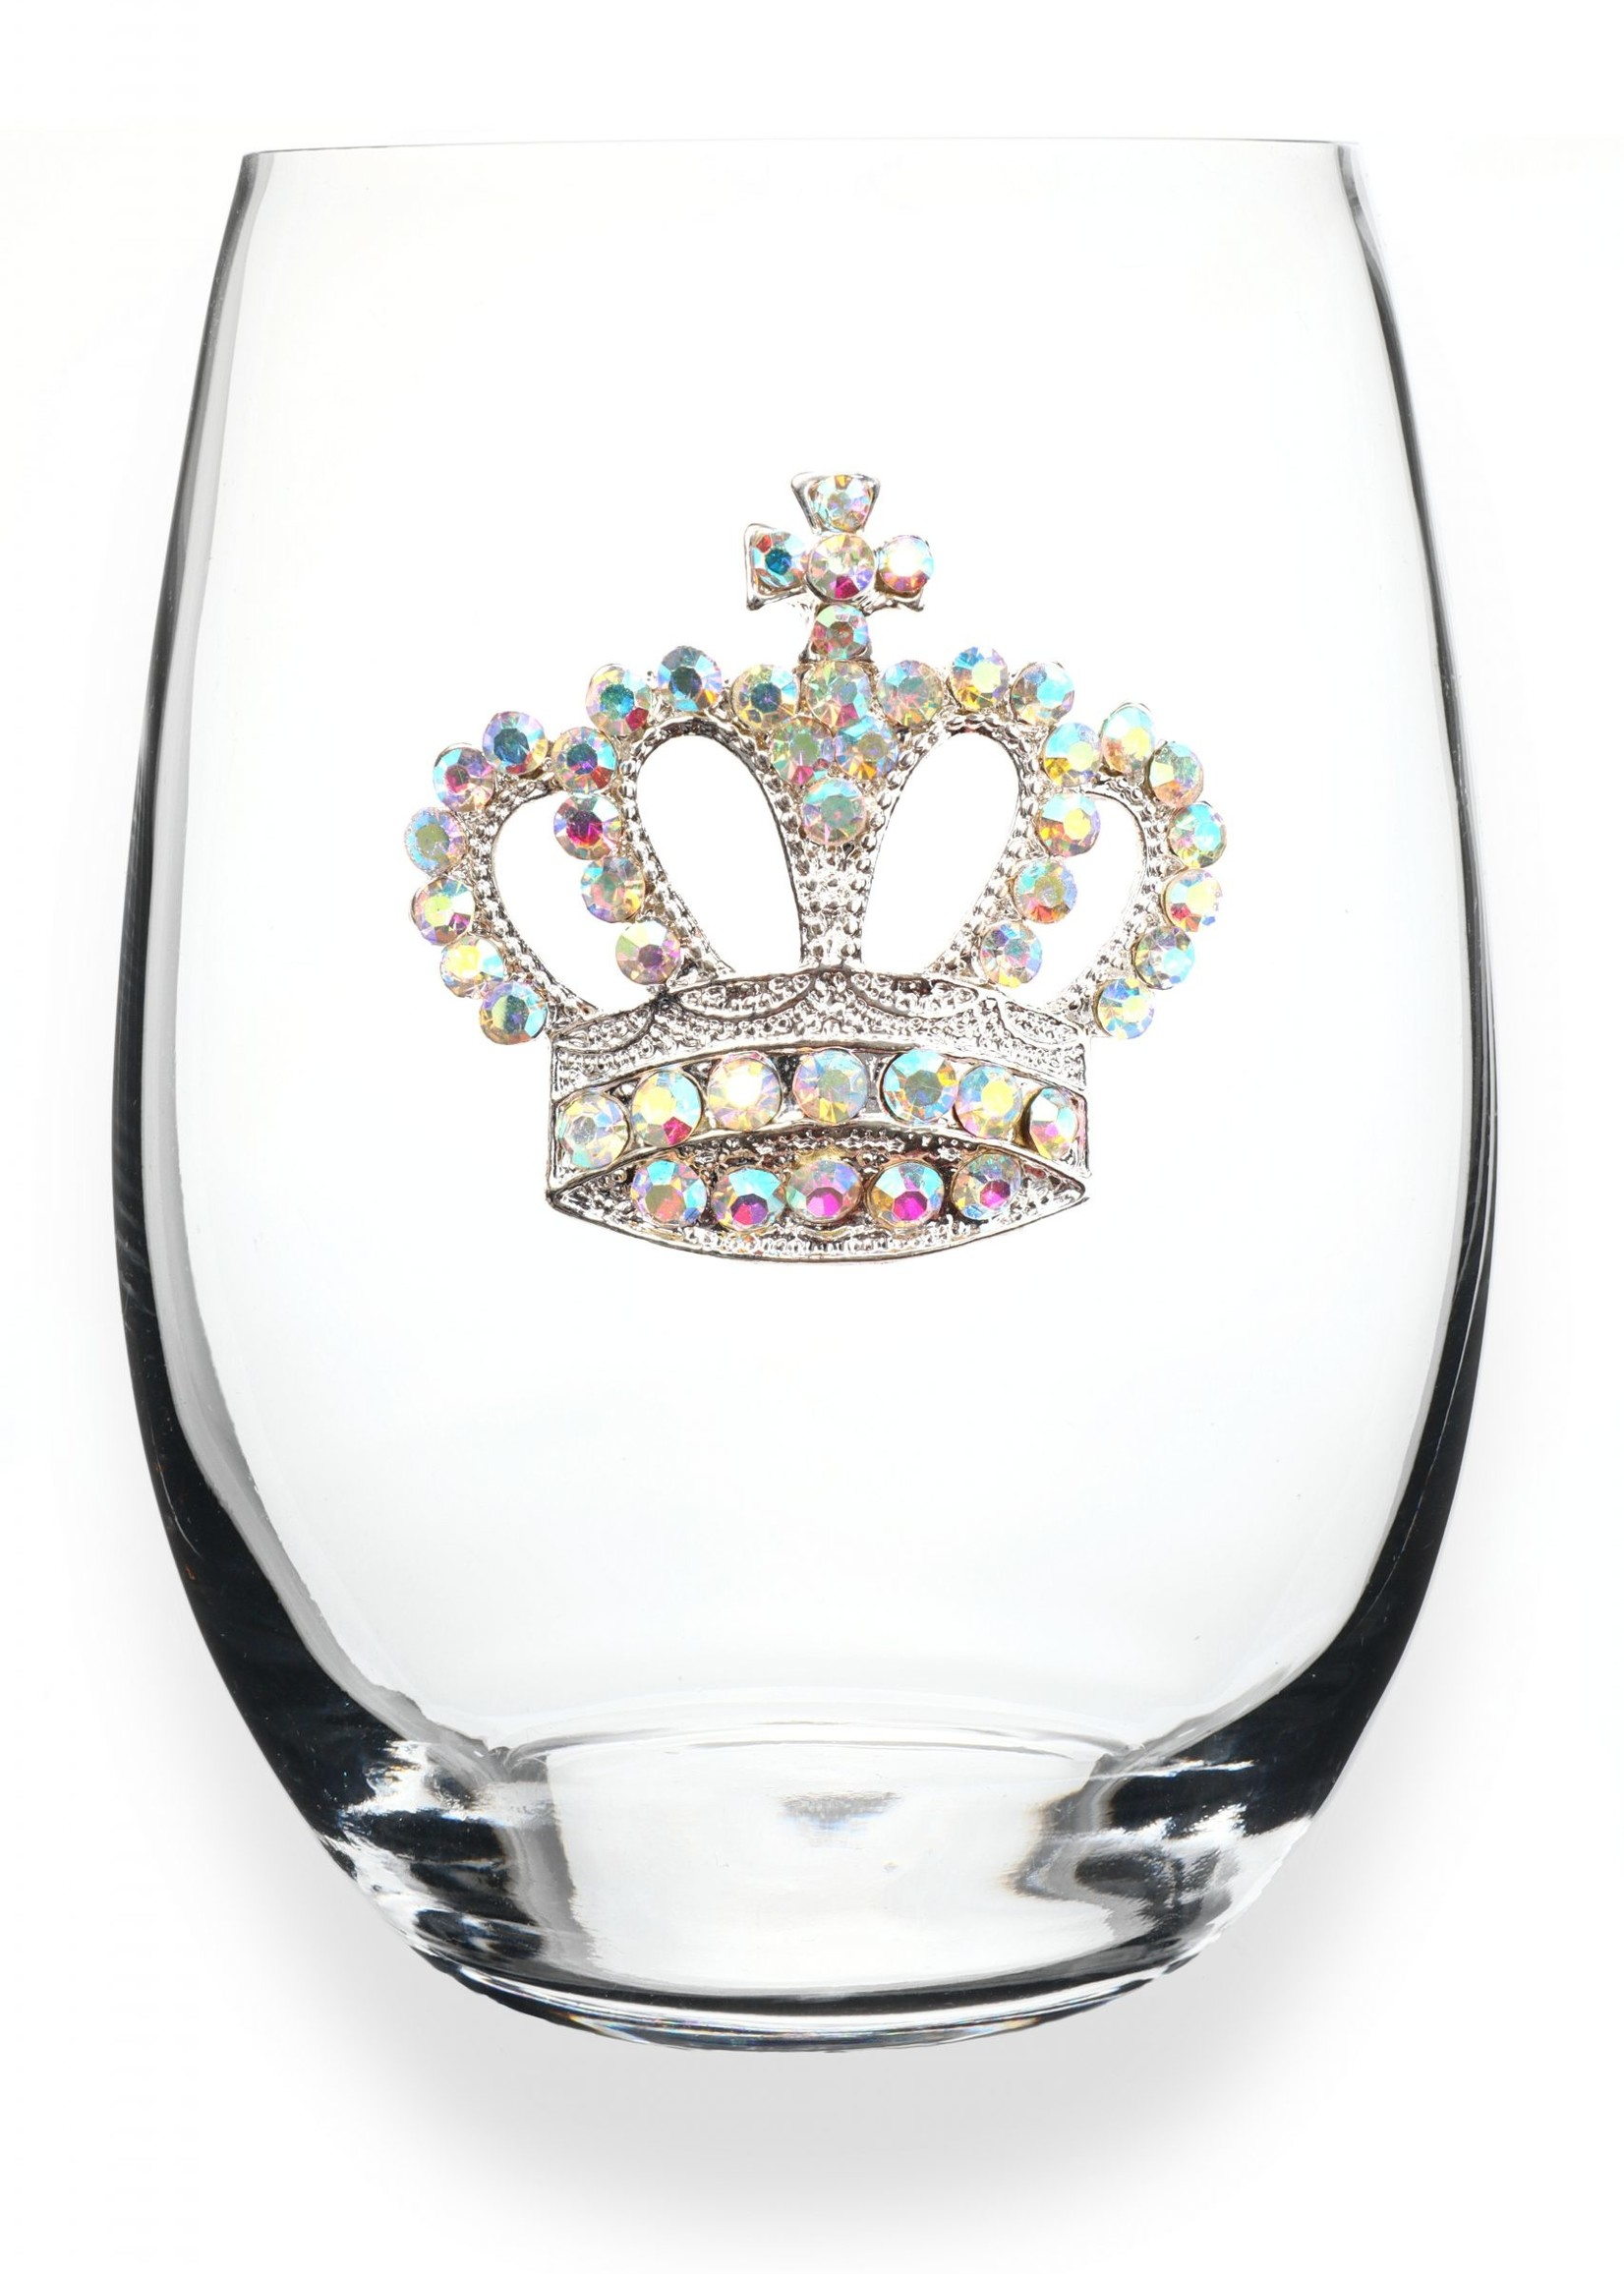 The Queen's Jewels Aurora Boreal Crown Stemless Wine Glass